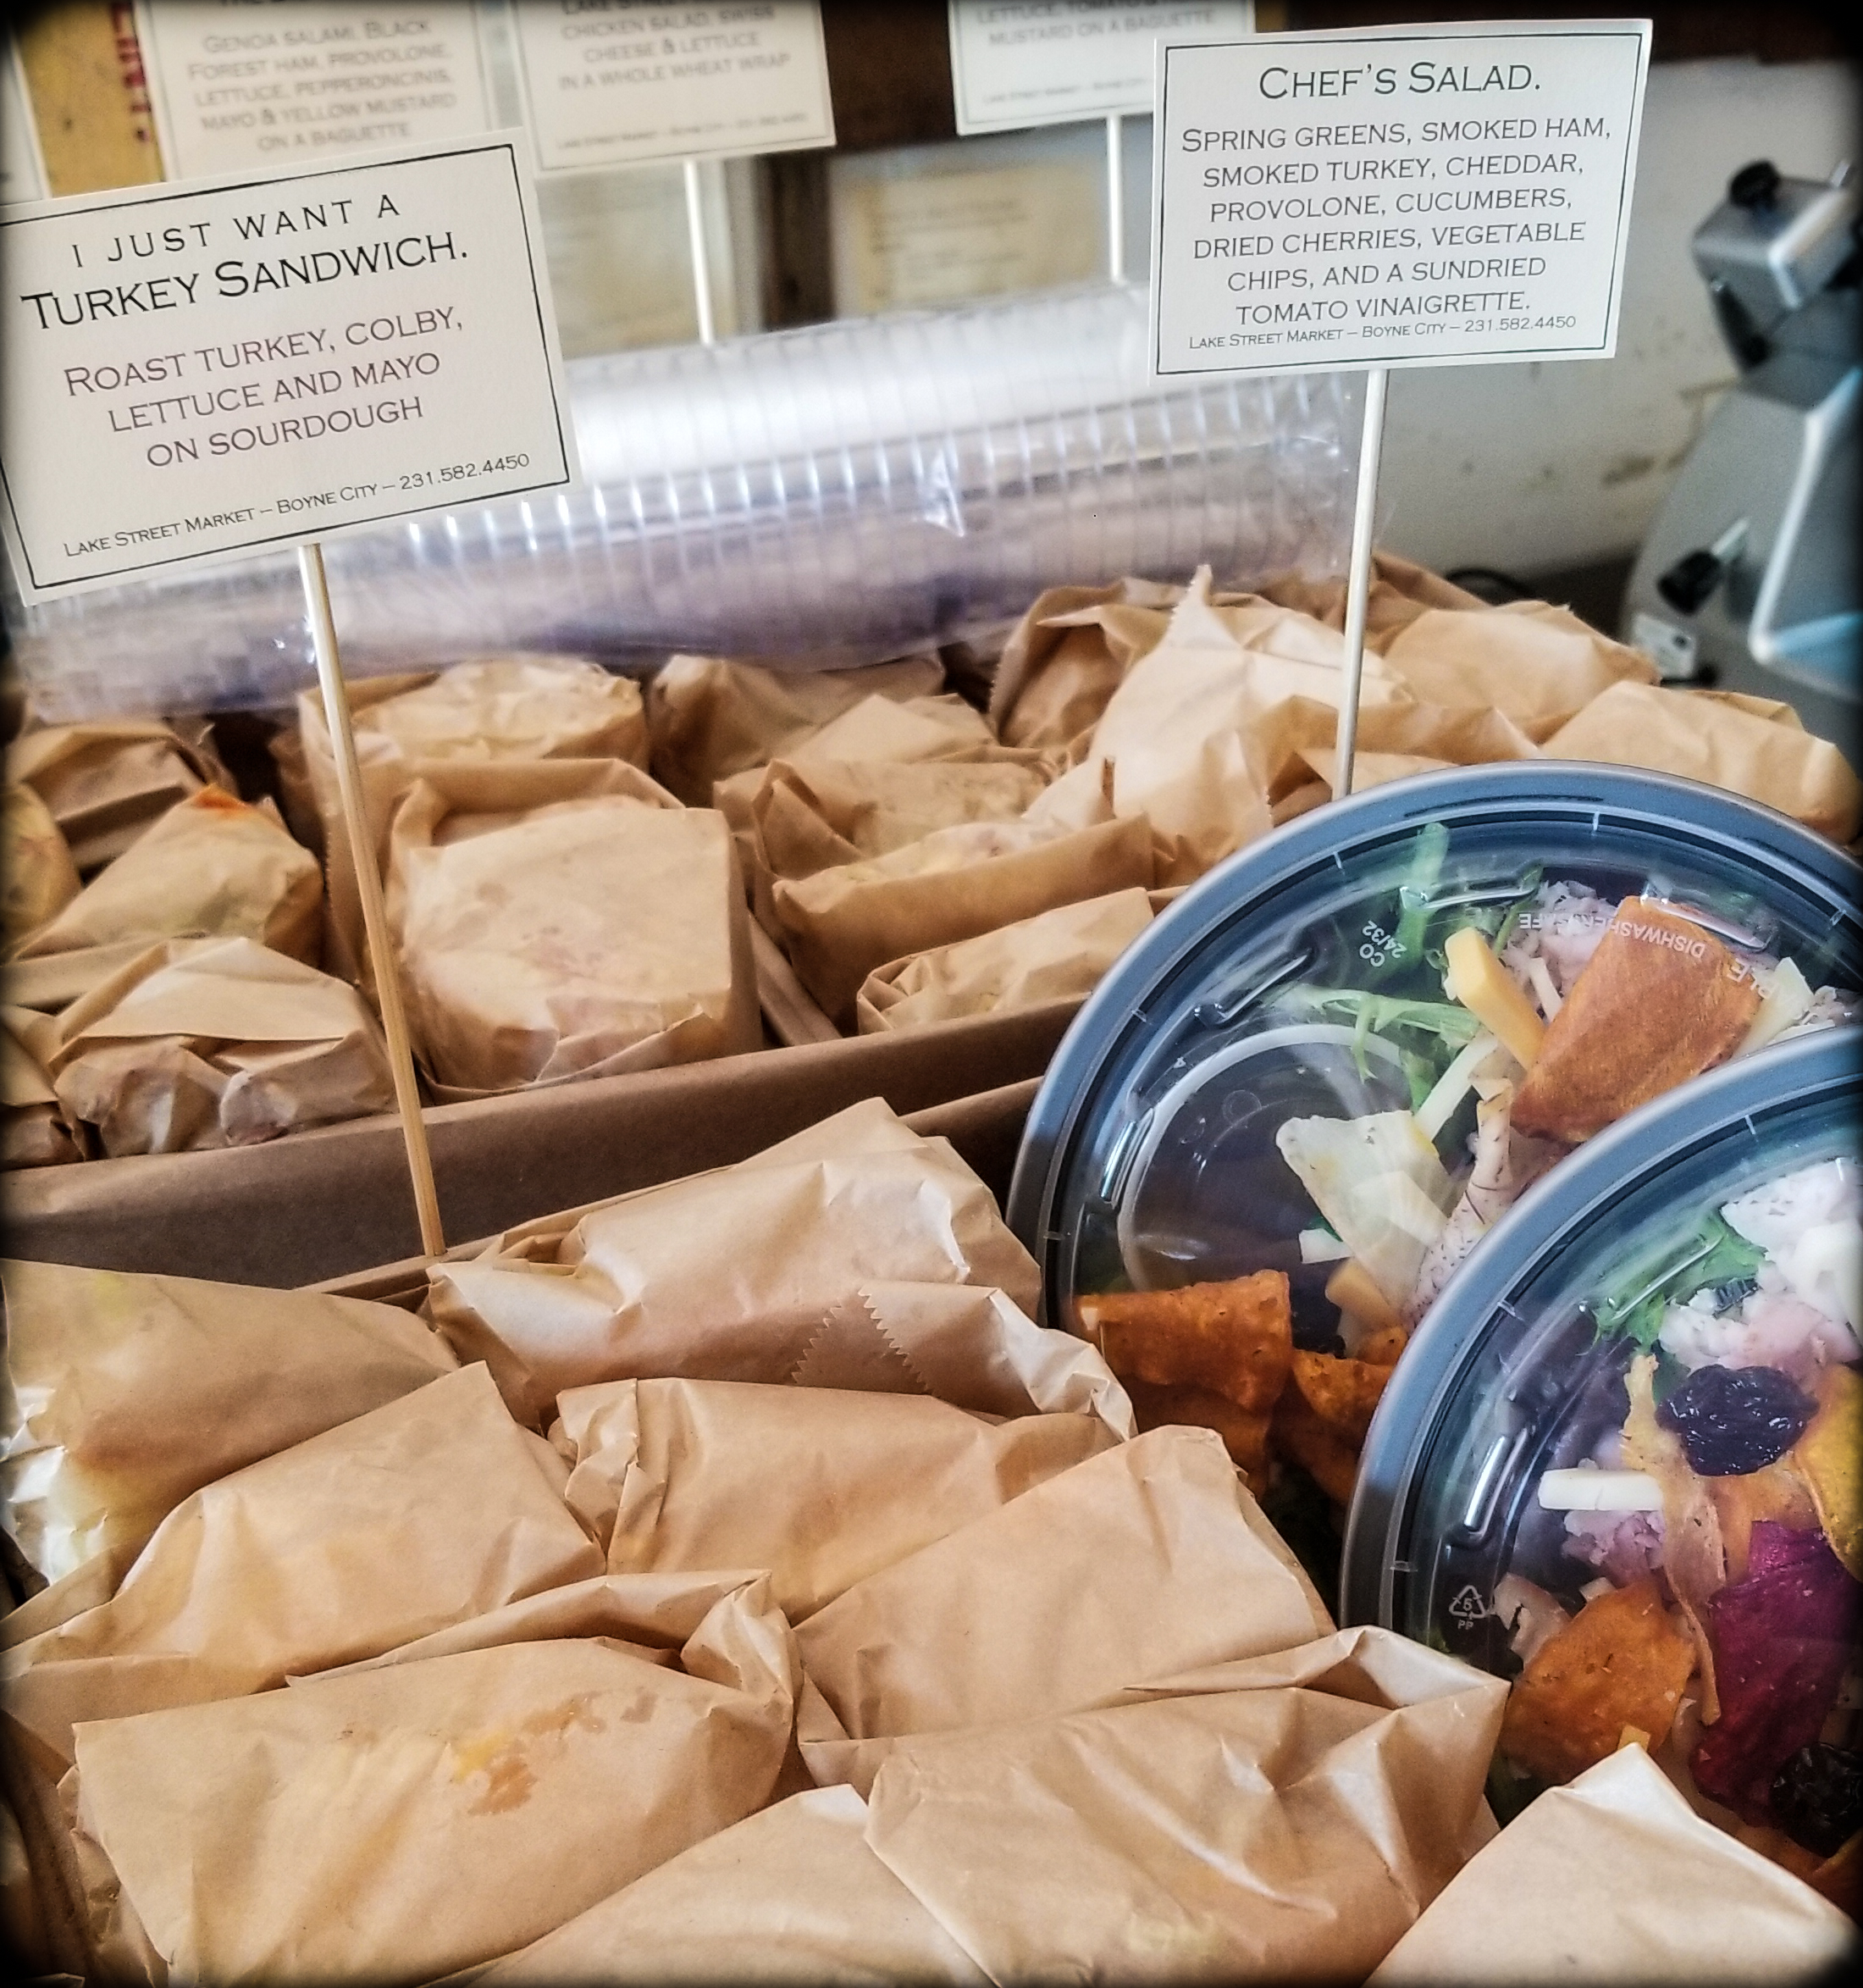 Assorted half sandwiches and chef salads from Lake Street Market make for a way-above-average lunch meeting.